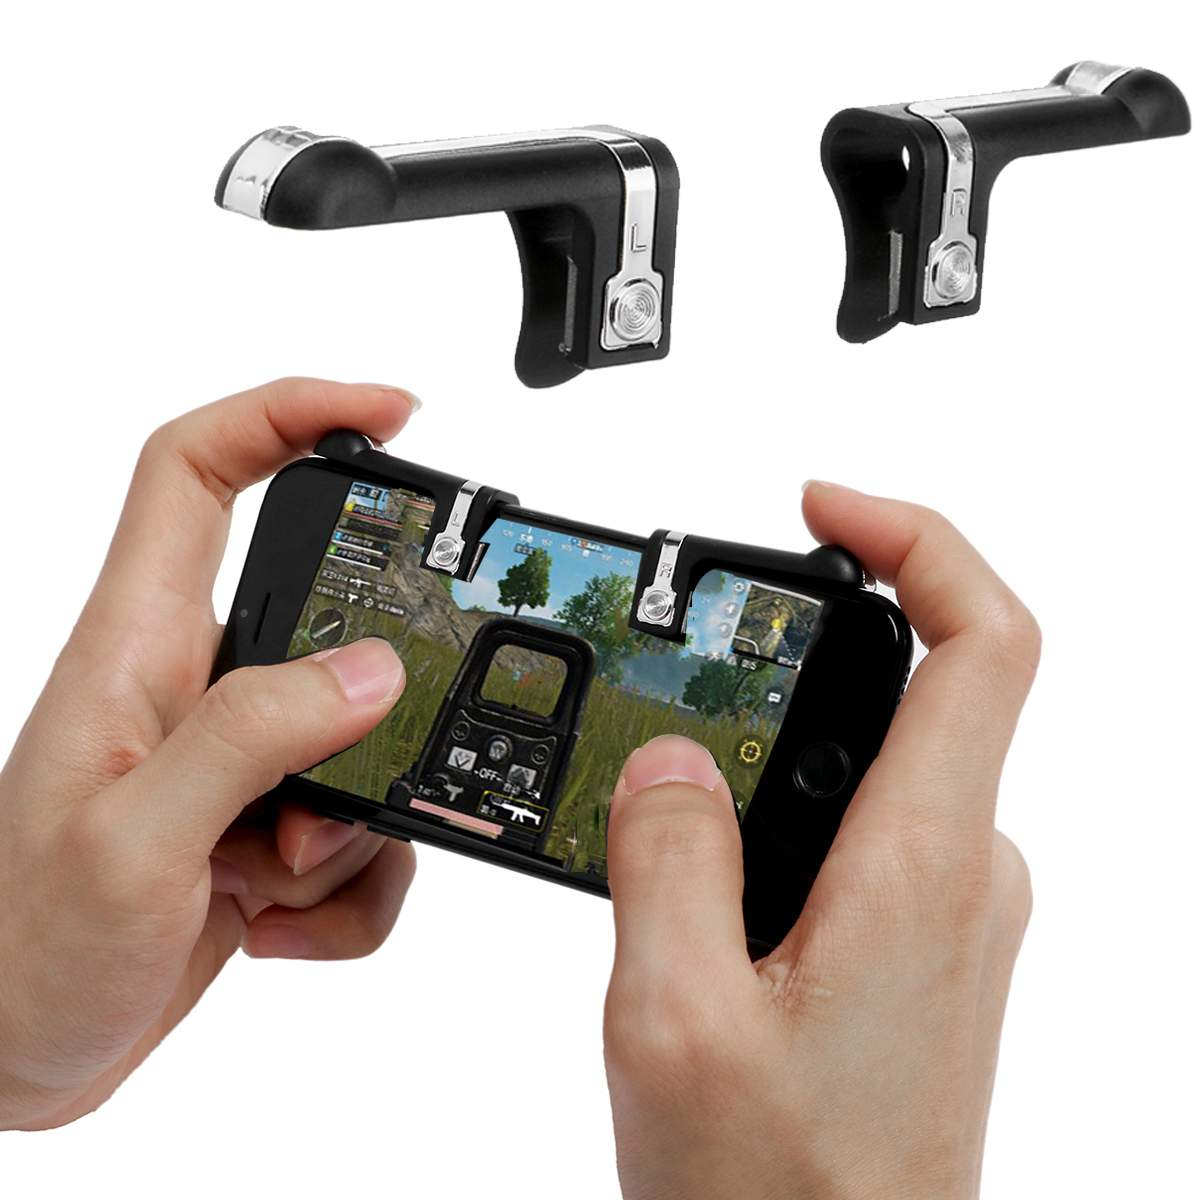 Metal Phone Gamepad Game Controller <font><b>Shooter</b></font> Mobile Gaming Aiming Key Button L1R1 <font><b>Shooter</b></font> Trigger for Smartphone image